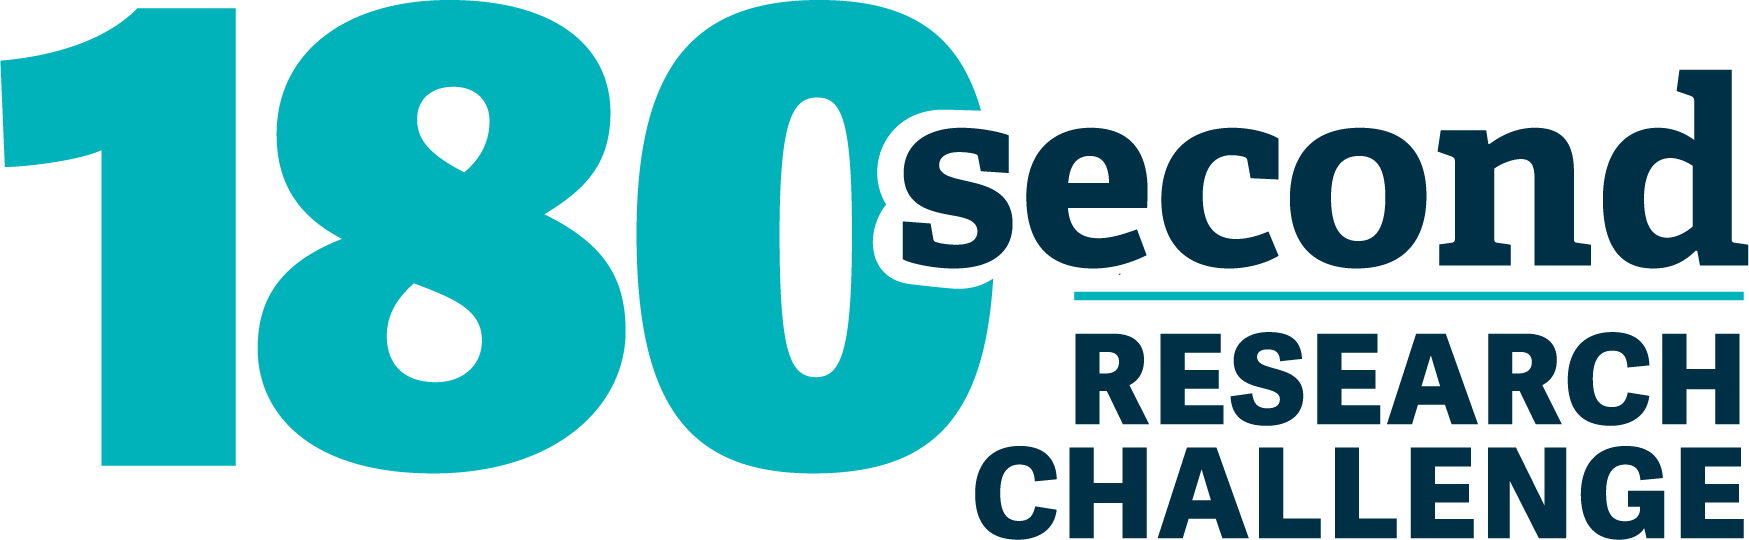 180-Second Research Challenge